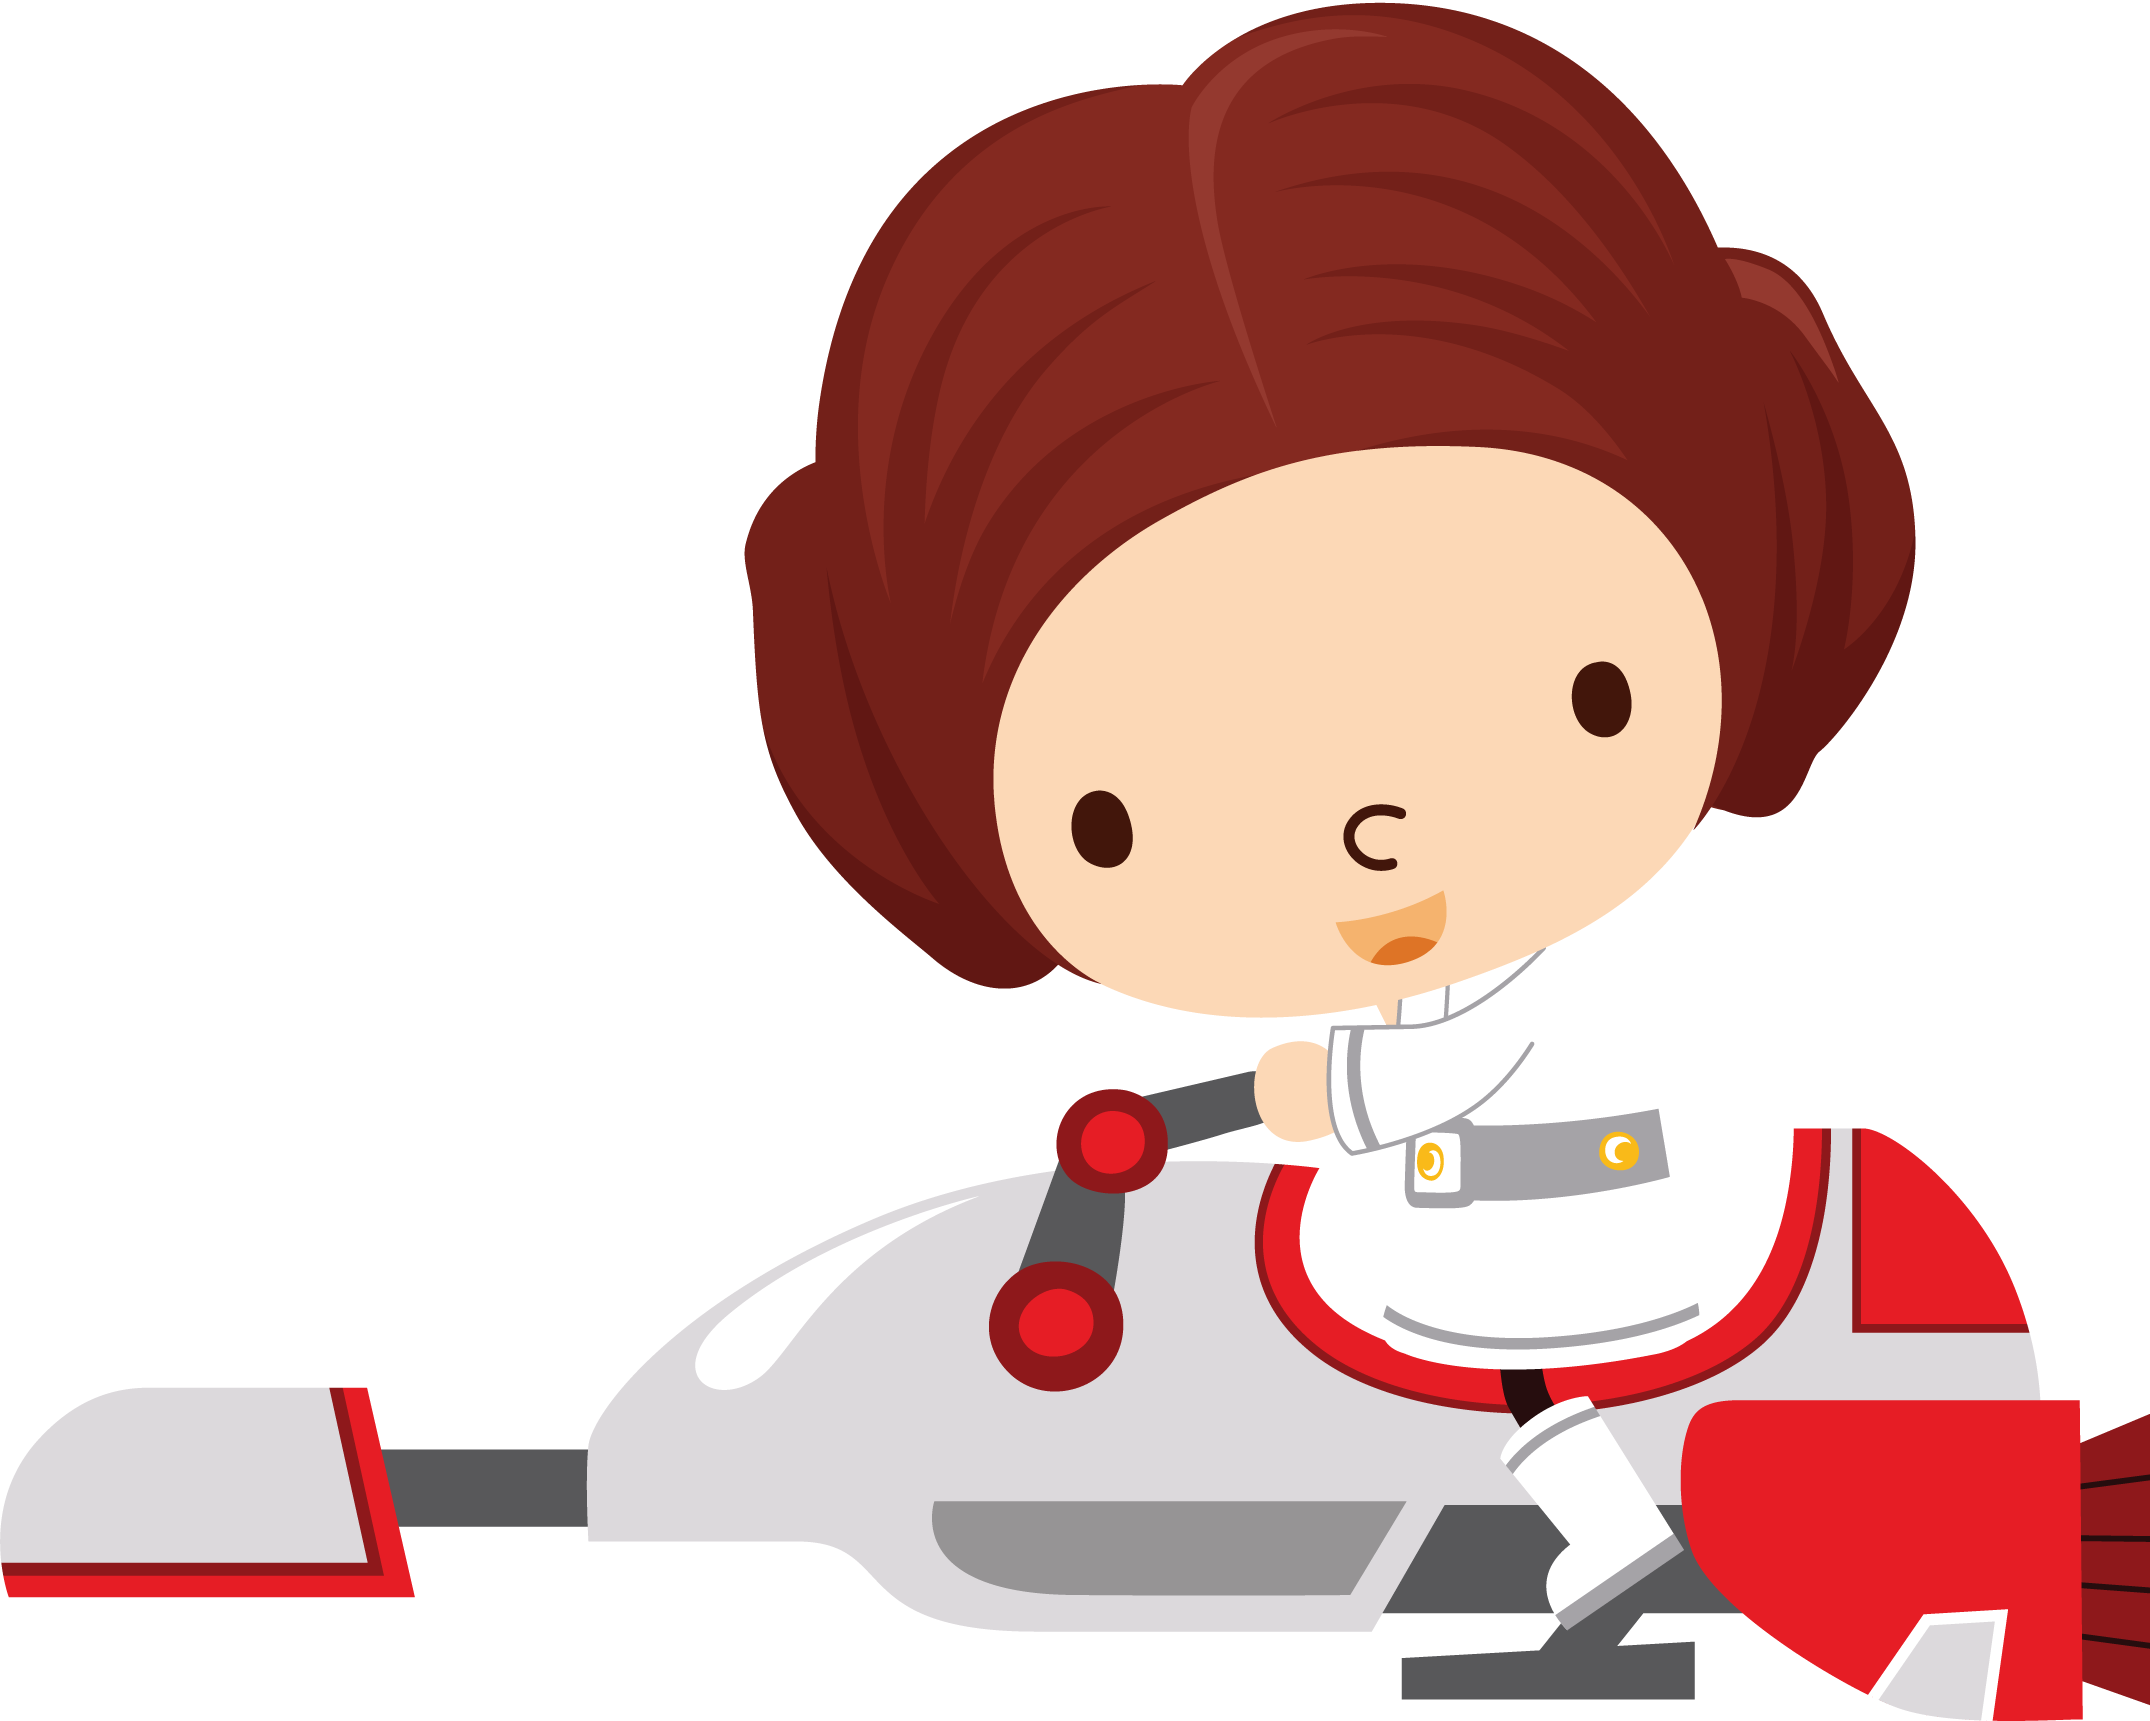 Star wars cute clipart image free Clone Wars Clipart at GetDrawings.com | Free for personal use Clone ... image free